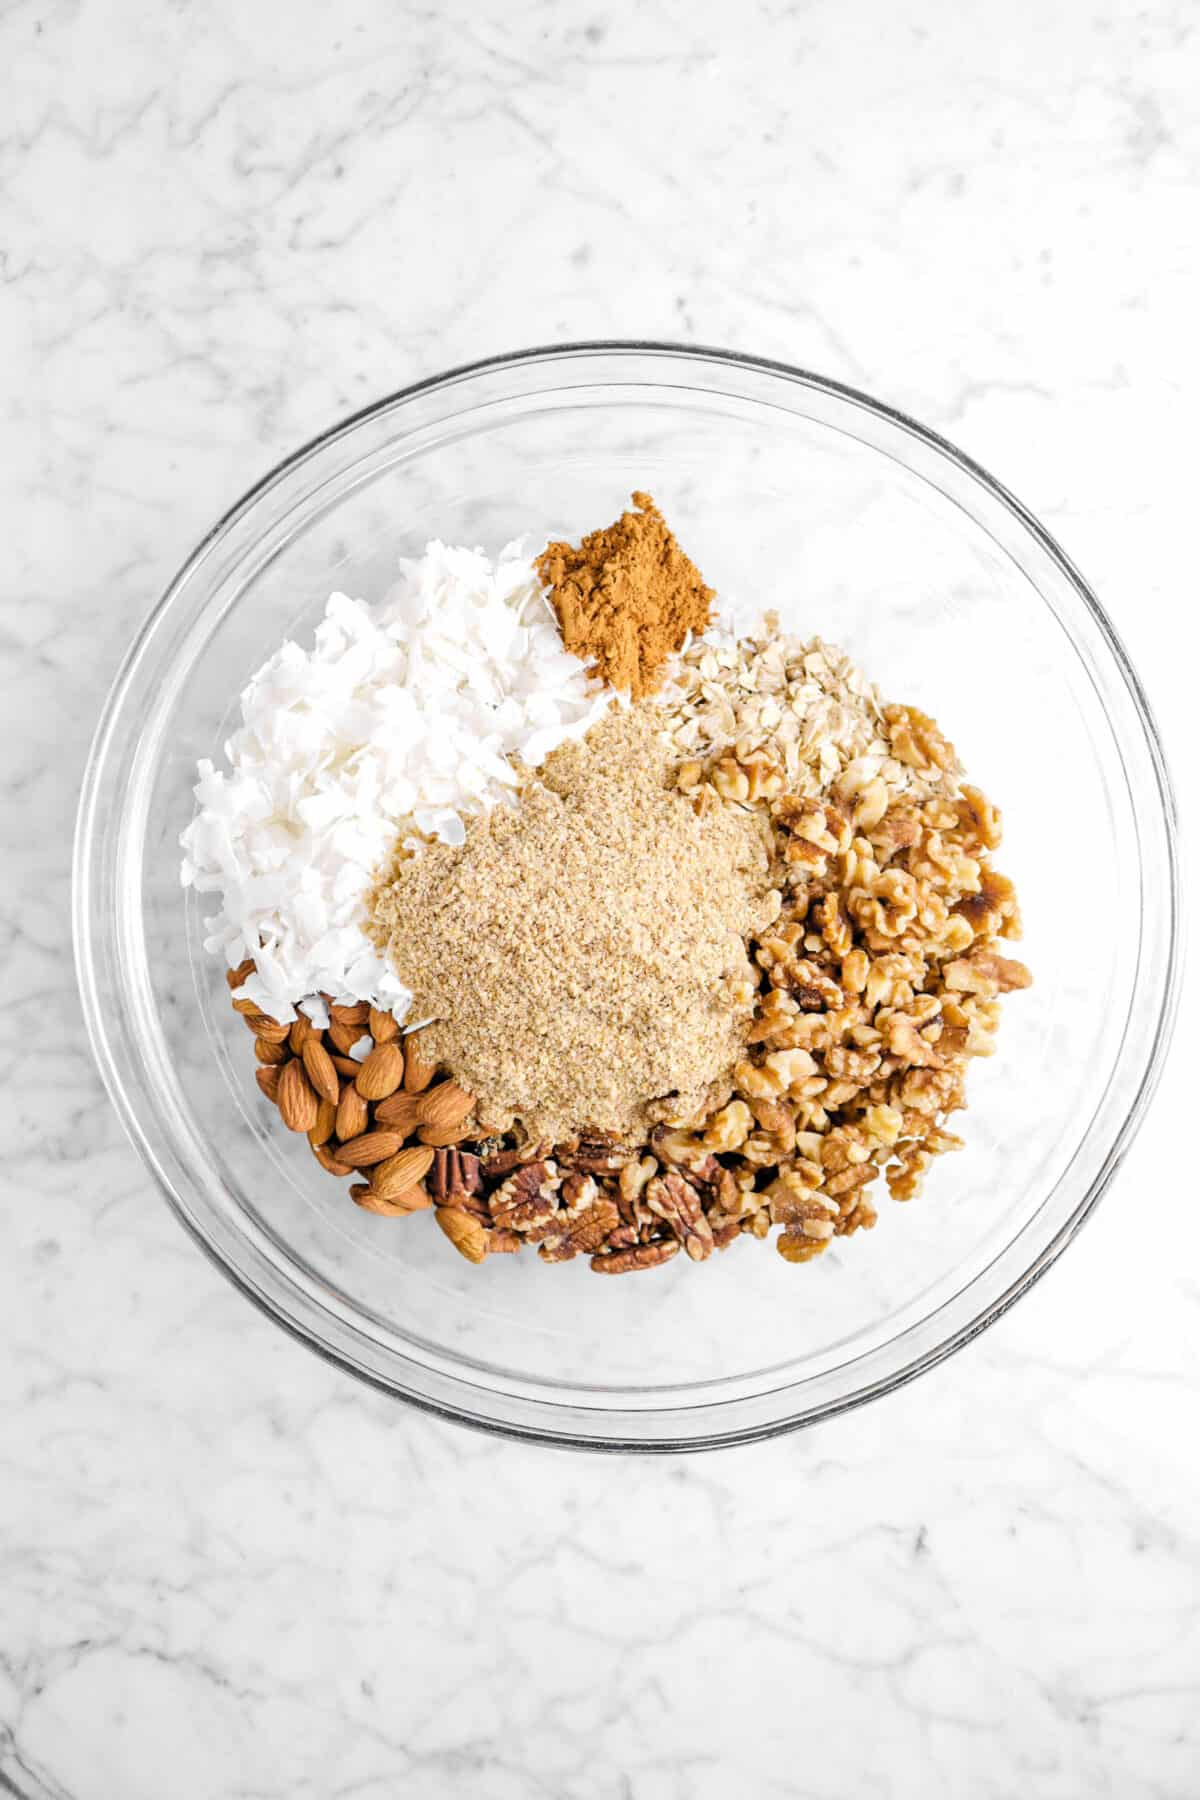 cinnamon, coconut, wheat germ, almonds, pecans, walnuts, and oats in glass bowl